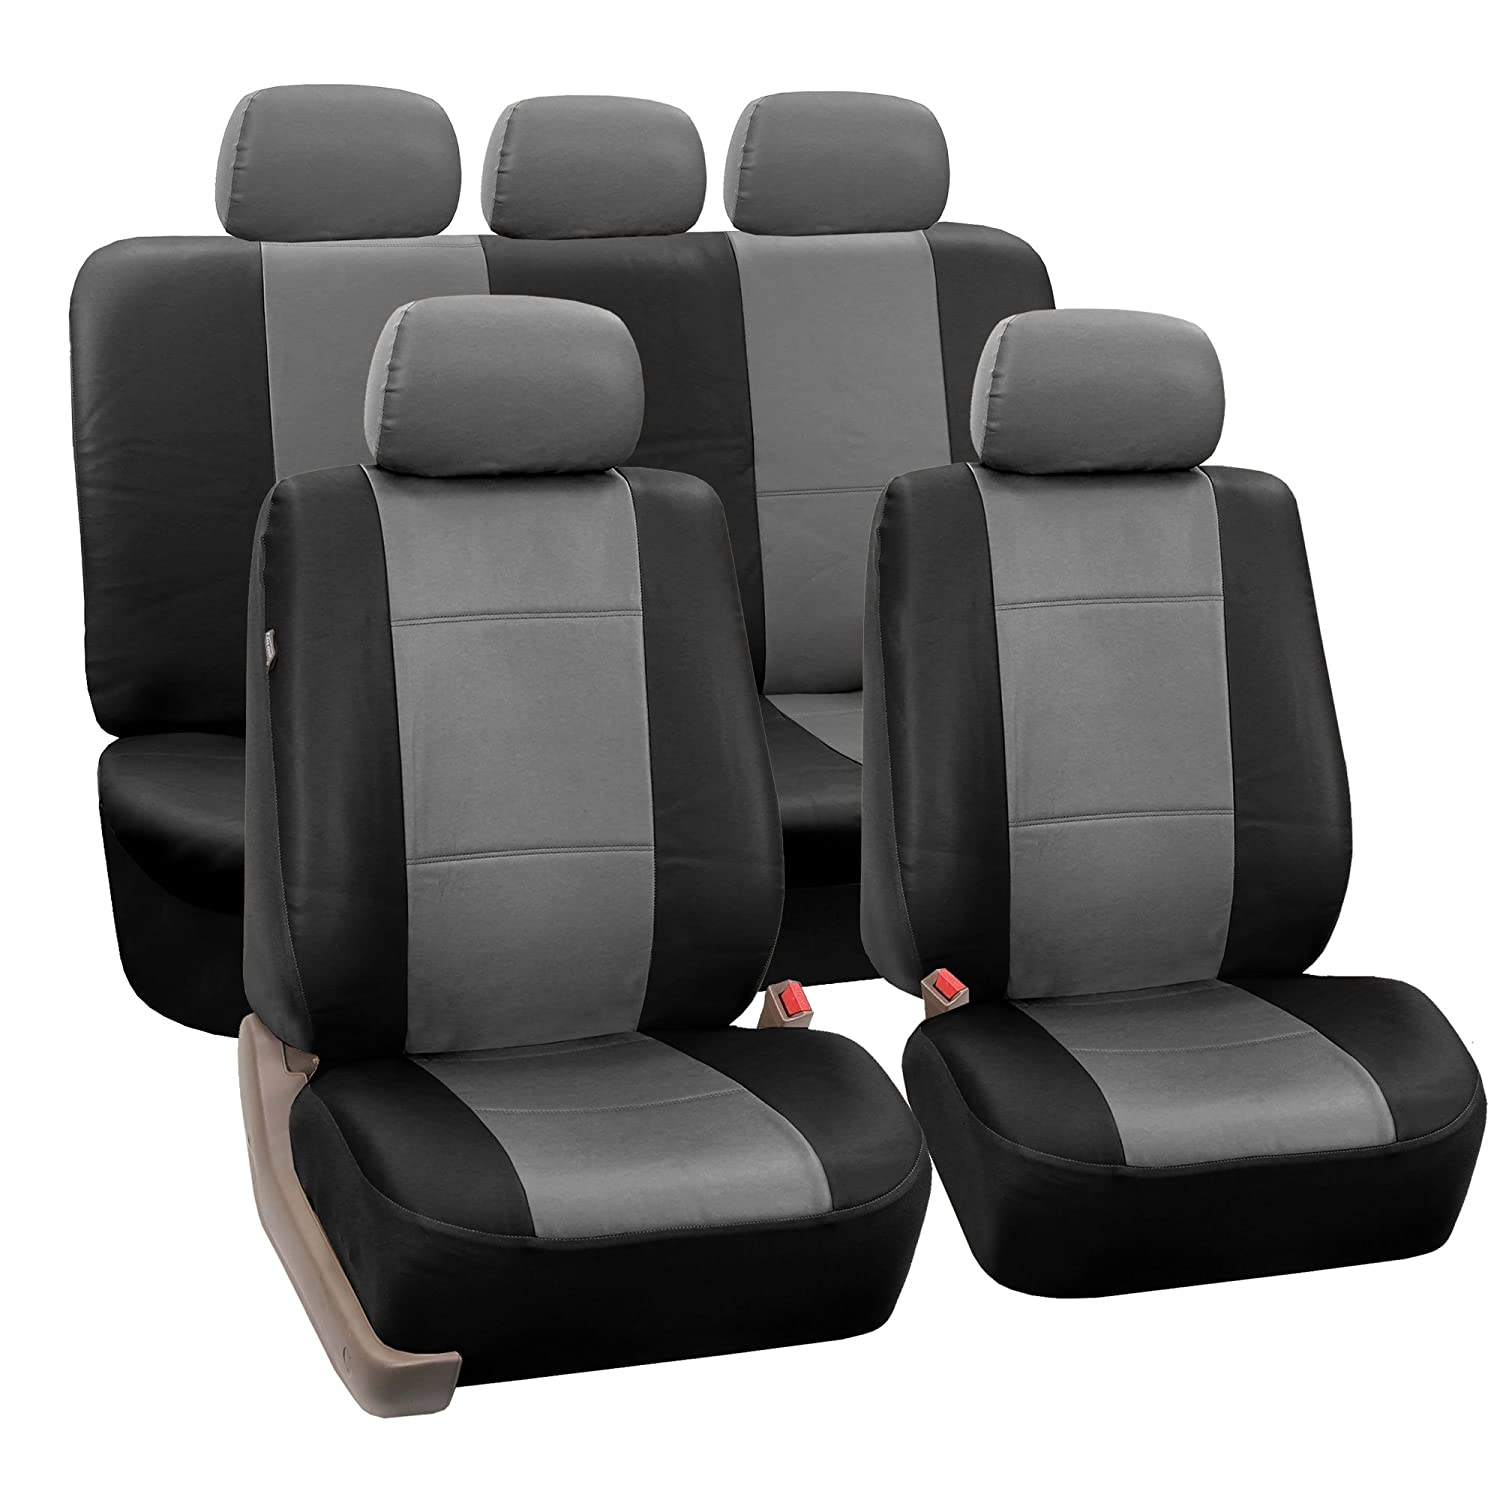 FH-PU002115 Classic Exquisite Leather Car Seat Covers, Airbag compatible and Split Bench, Gray / Black color